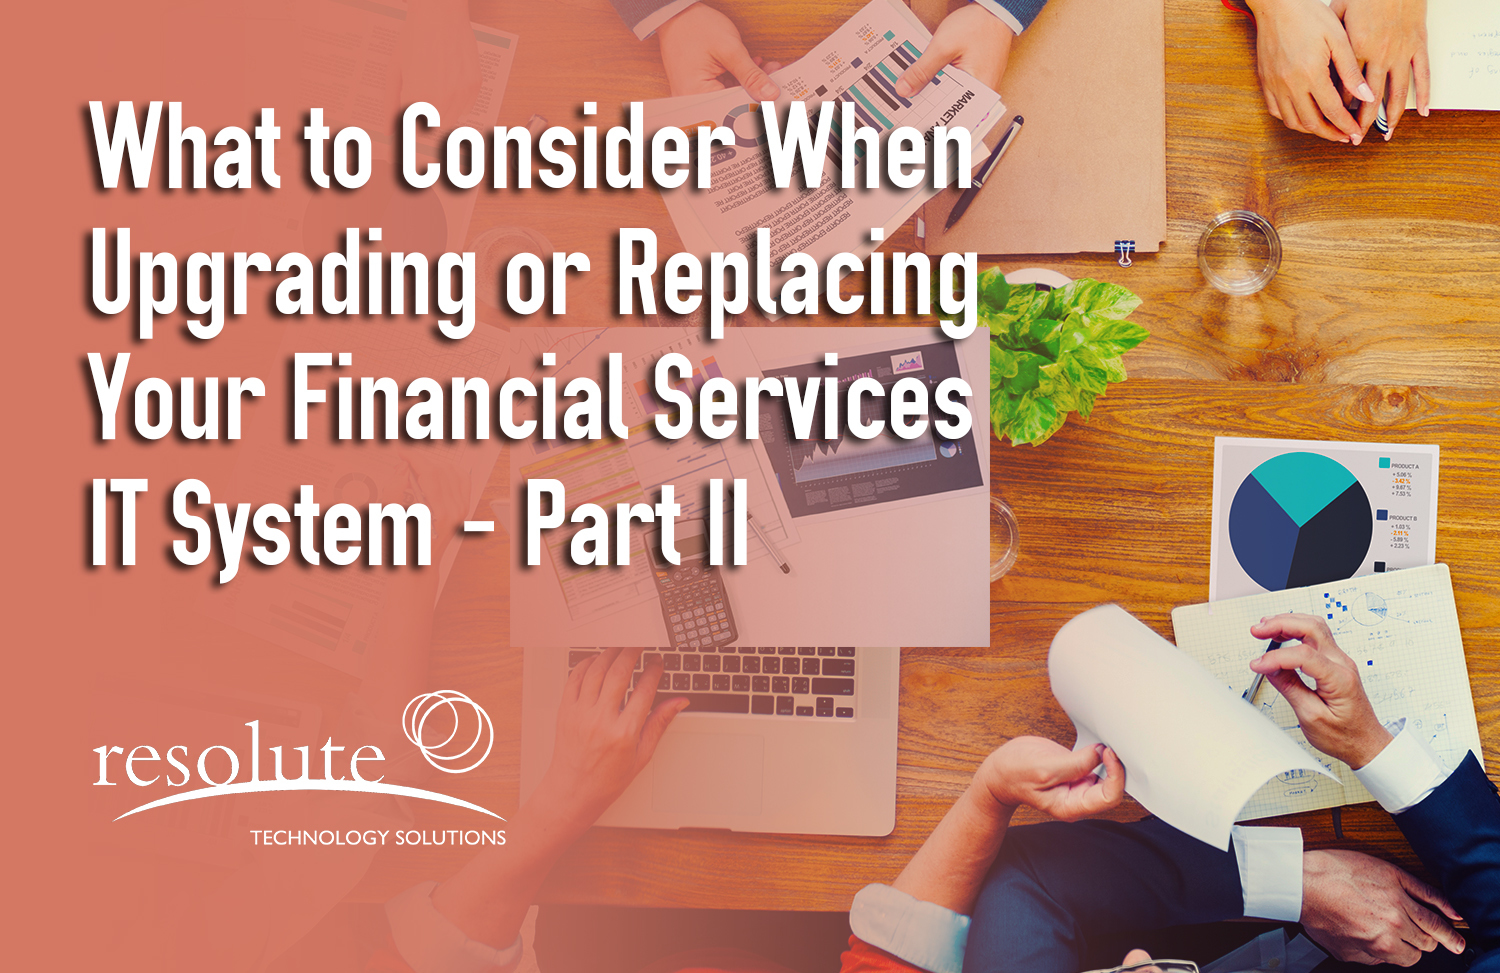 What to Consider When Upgrading or Replacing Your Financial Services IT System: Part 2